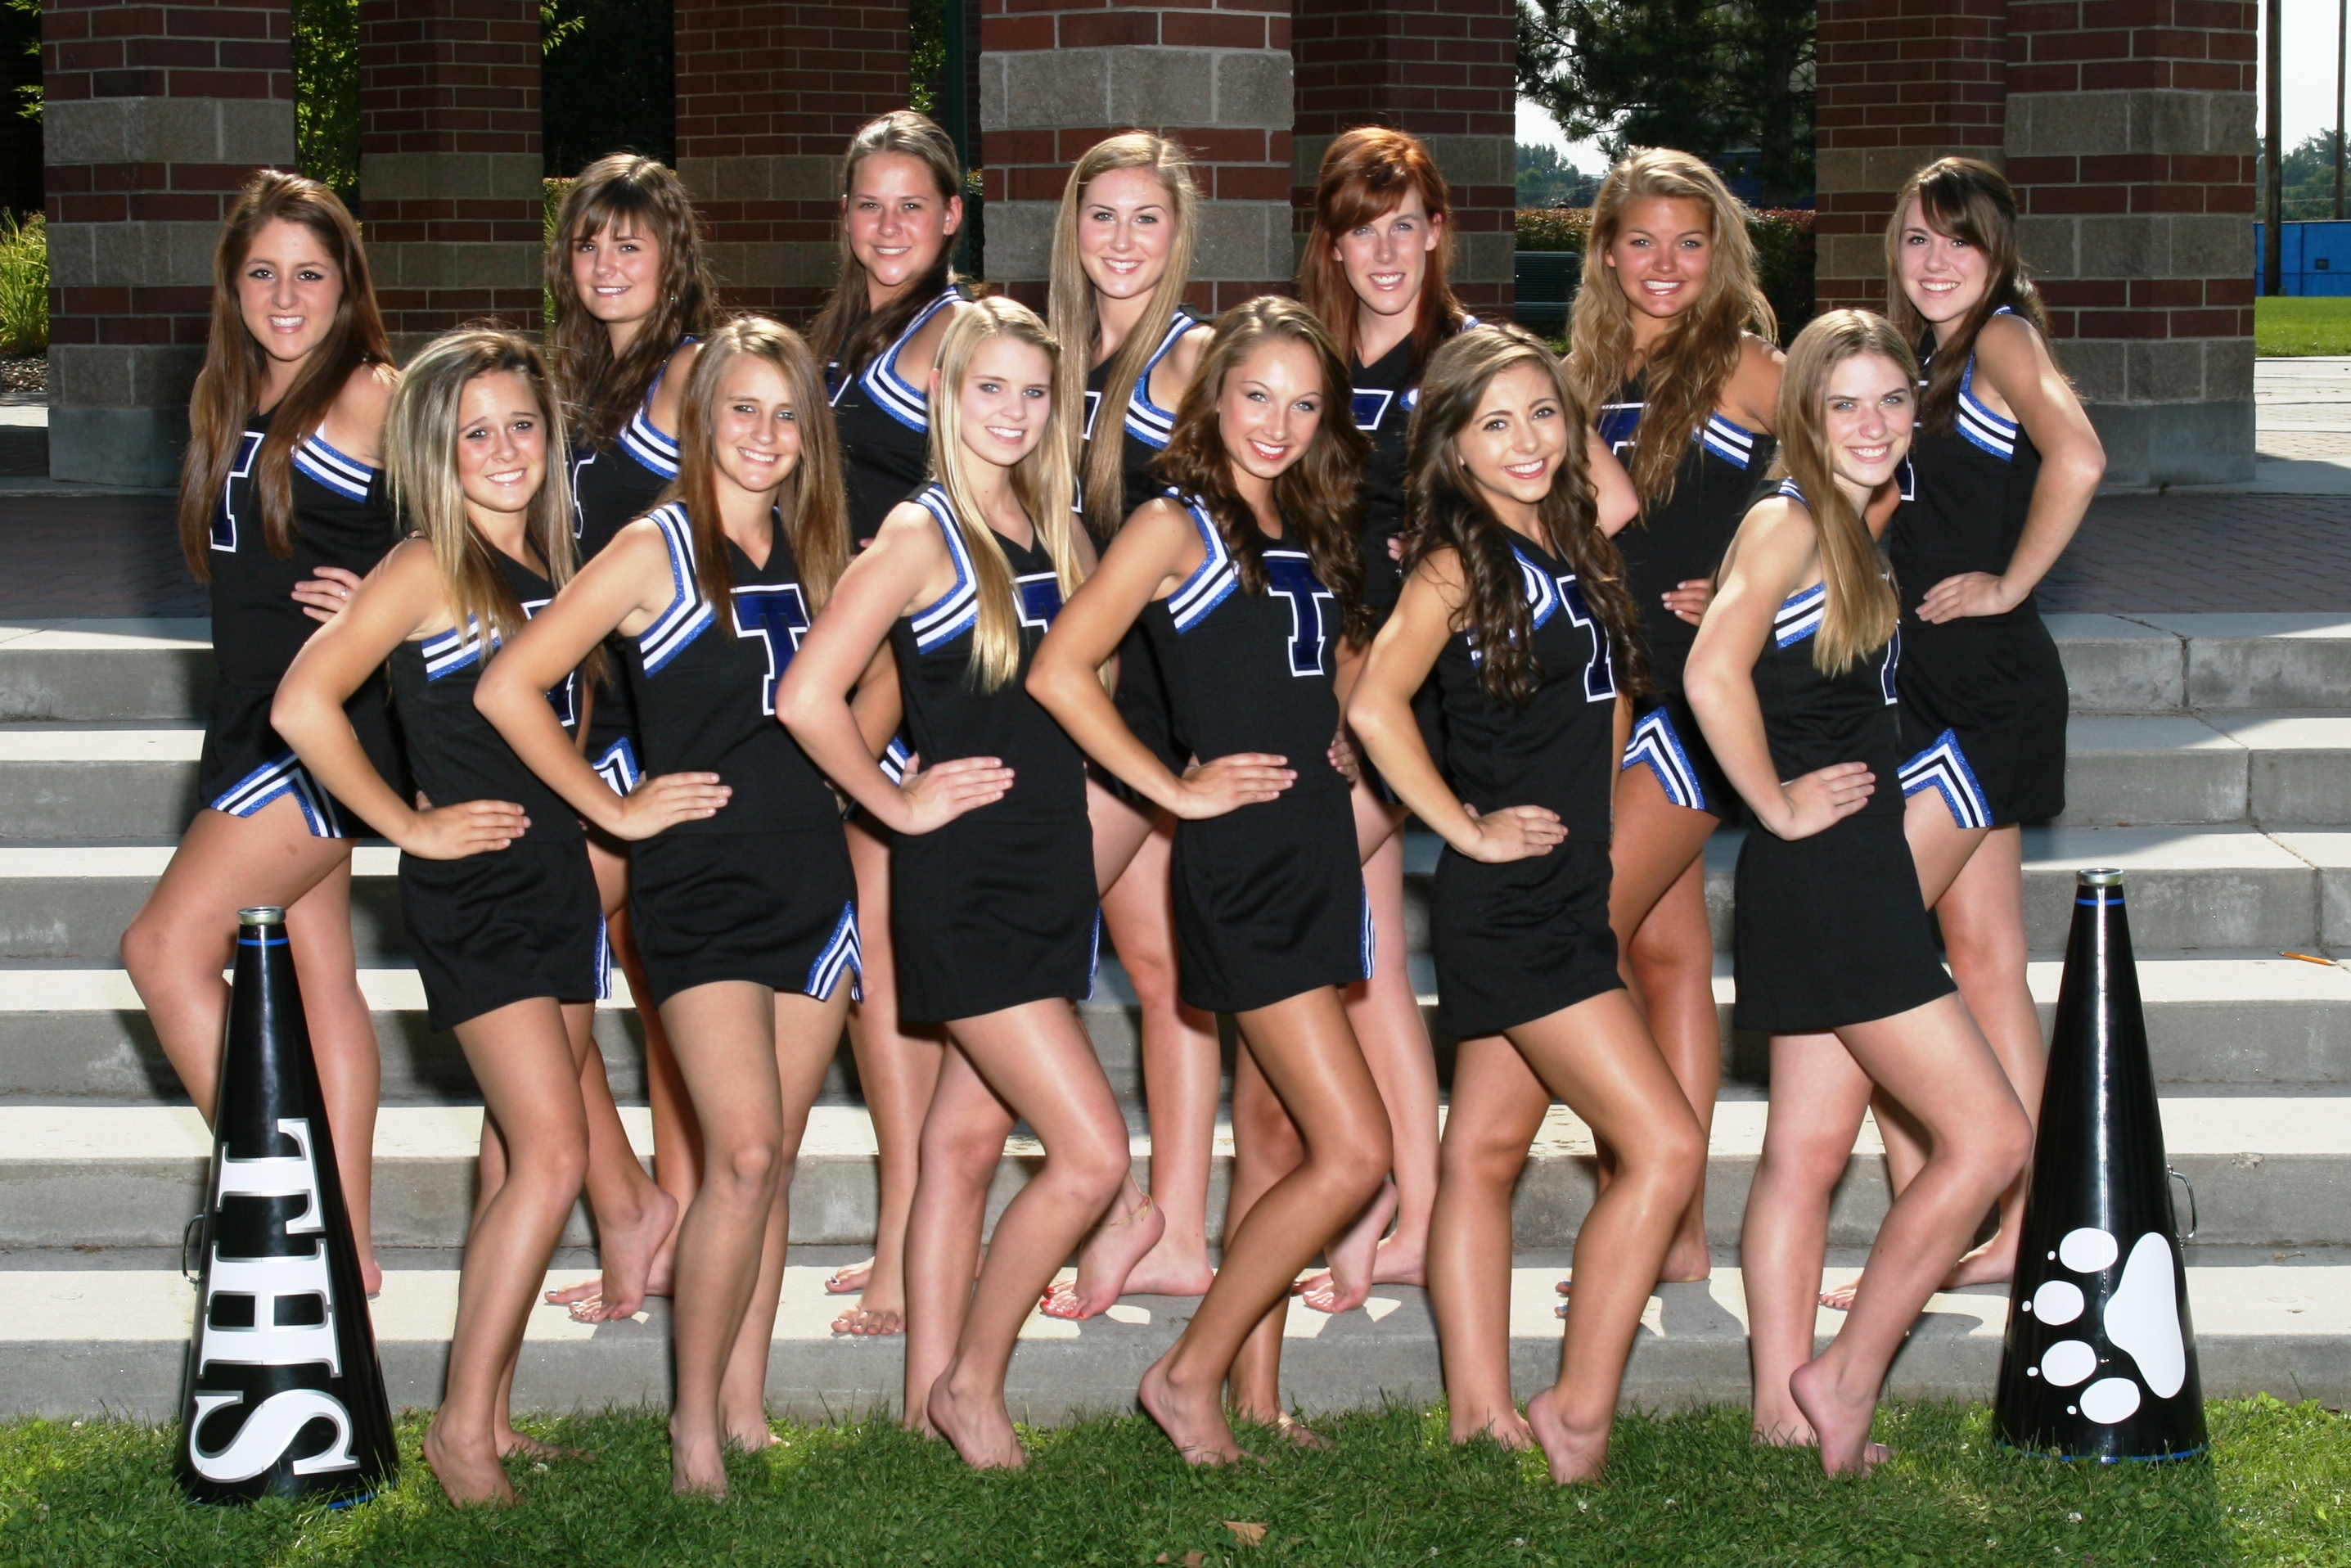 pin cheer athletics girls - photo #26